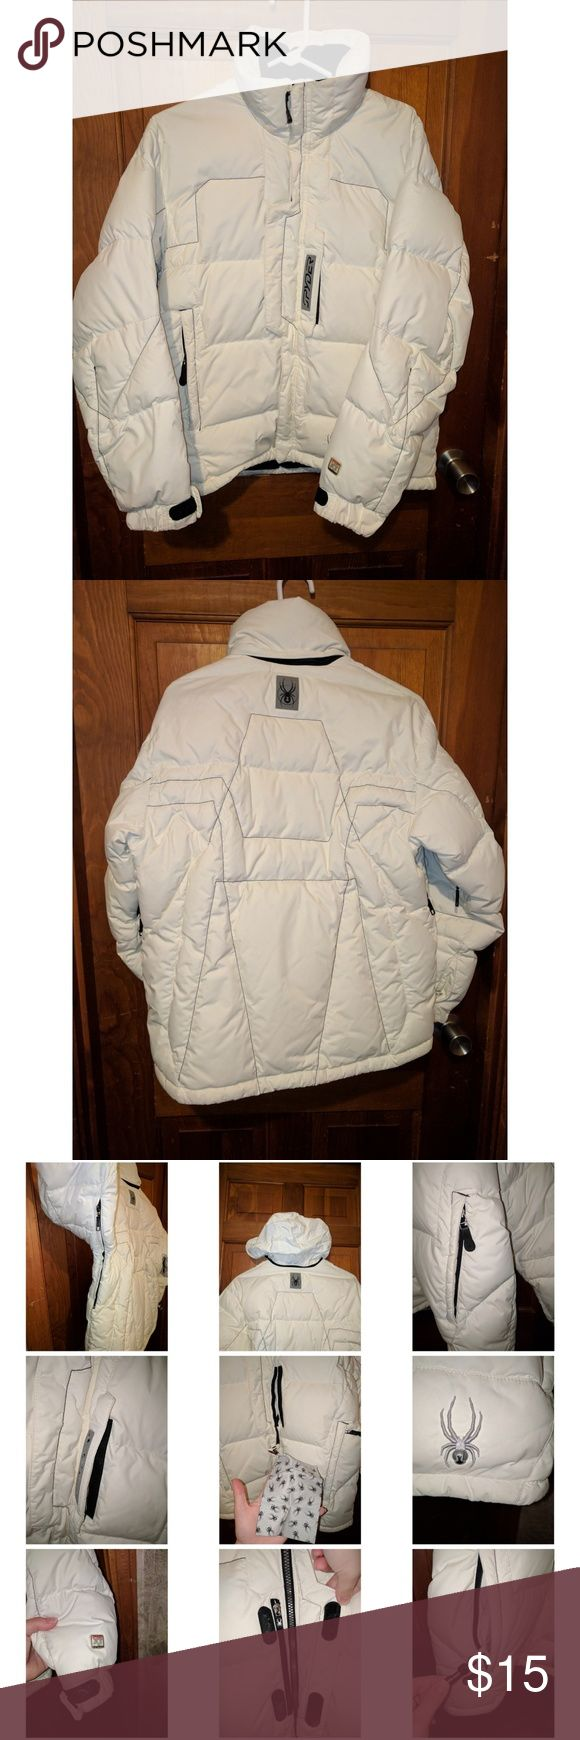 Spyder Off-White Down Puffer Ski/Snowboard Jacket Off-White Down Puffer Ski/Snowboard Jacket by Spyder, Has Many Technical Features Shown in Photos, has some small dark marks (shown in photos) that are not noticeable Spyder Jackets & Coats Puffers